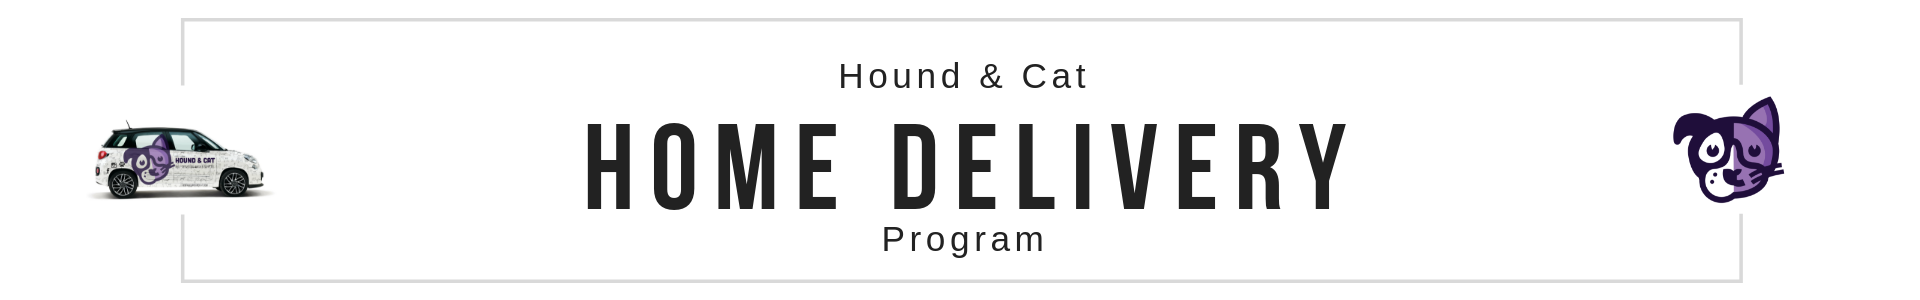 Hound & Cat Home Delivery Program